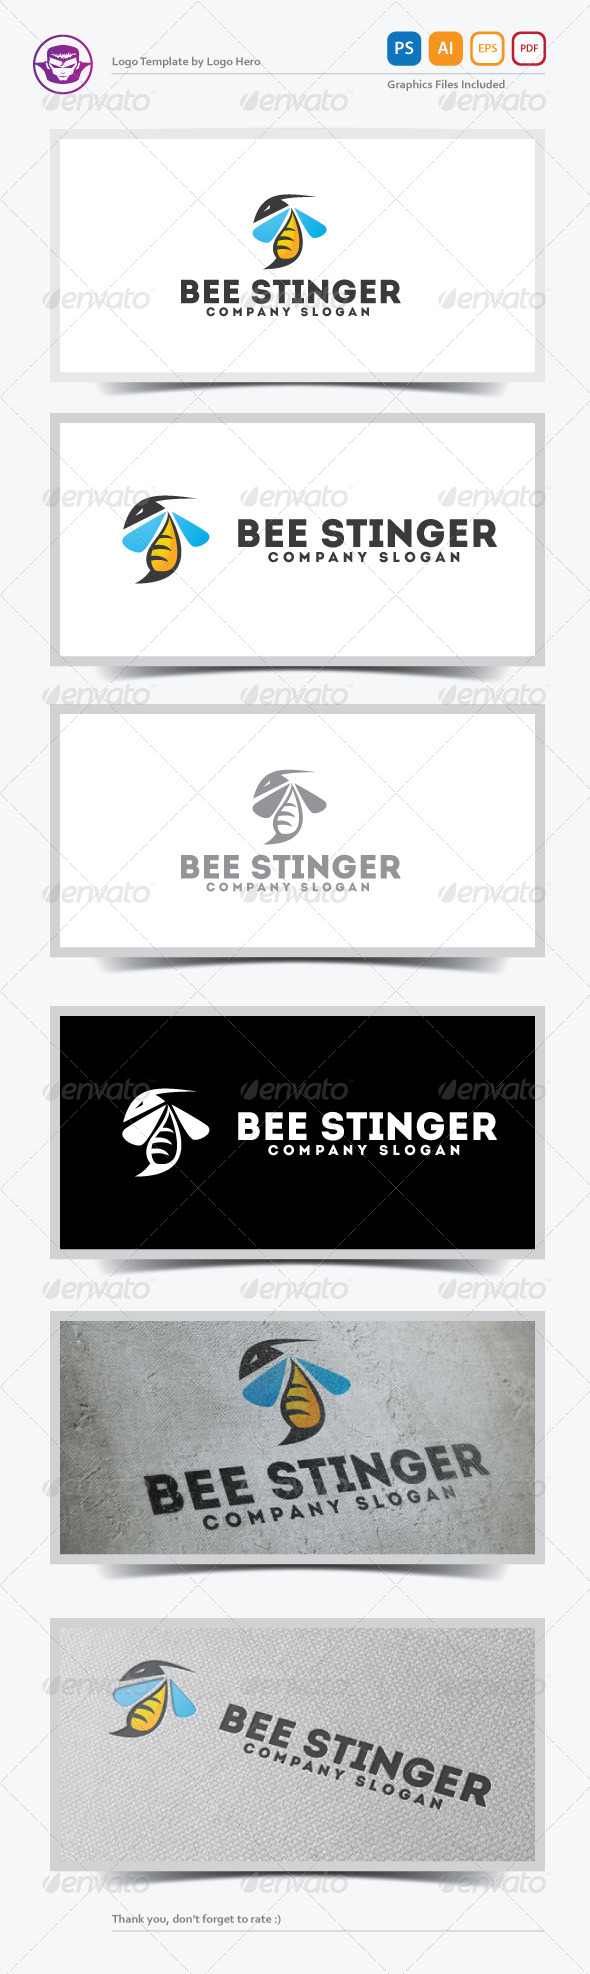 GraphicRiver Bee Stinger Logo Template 5583390